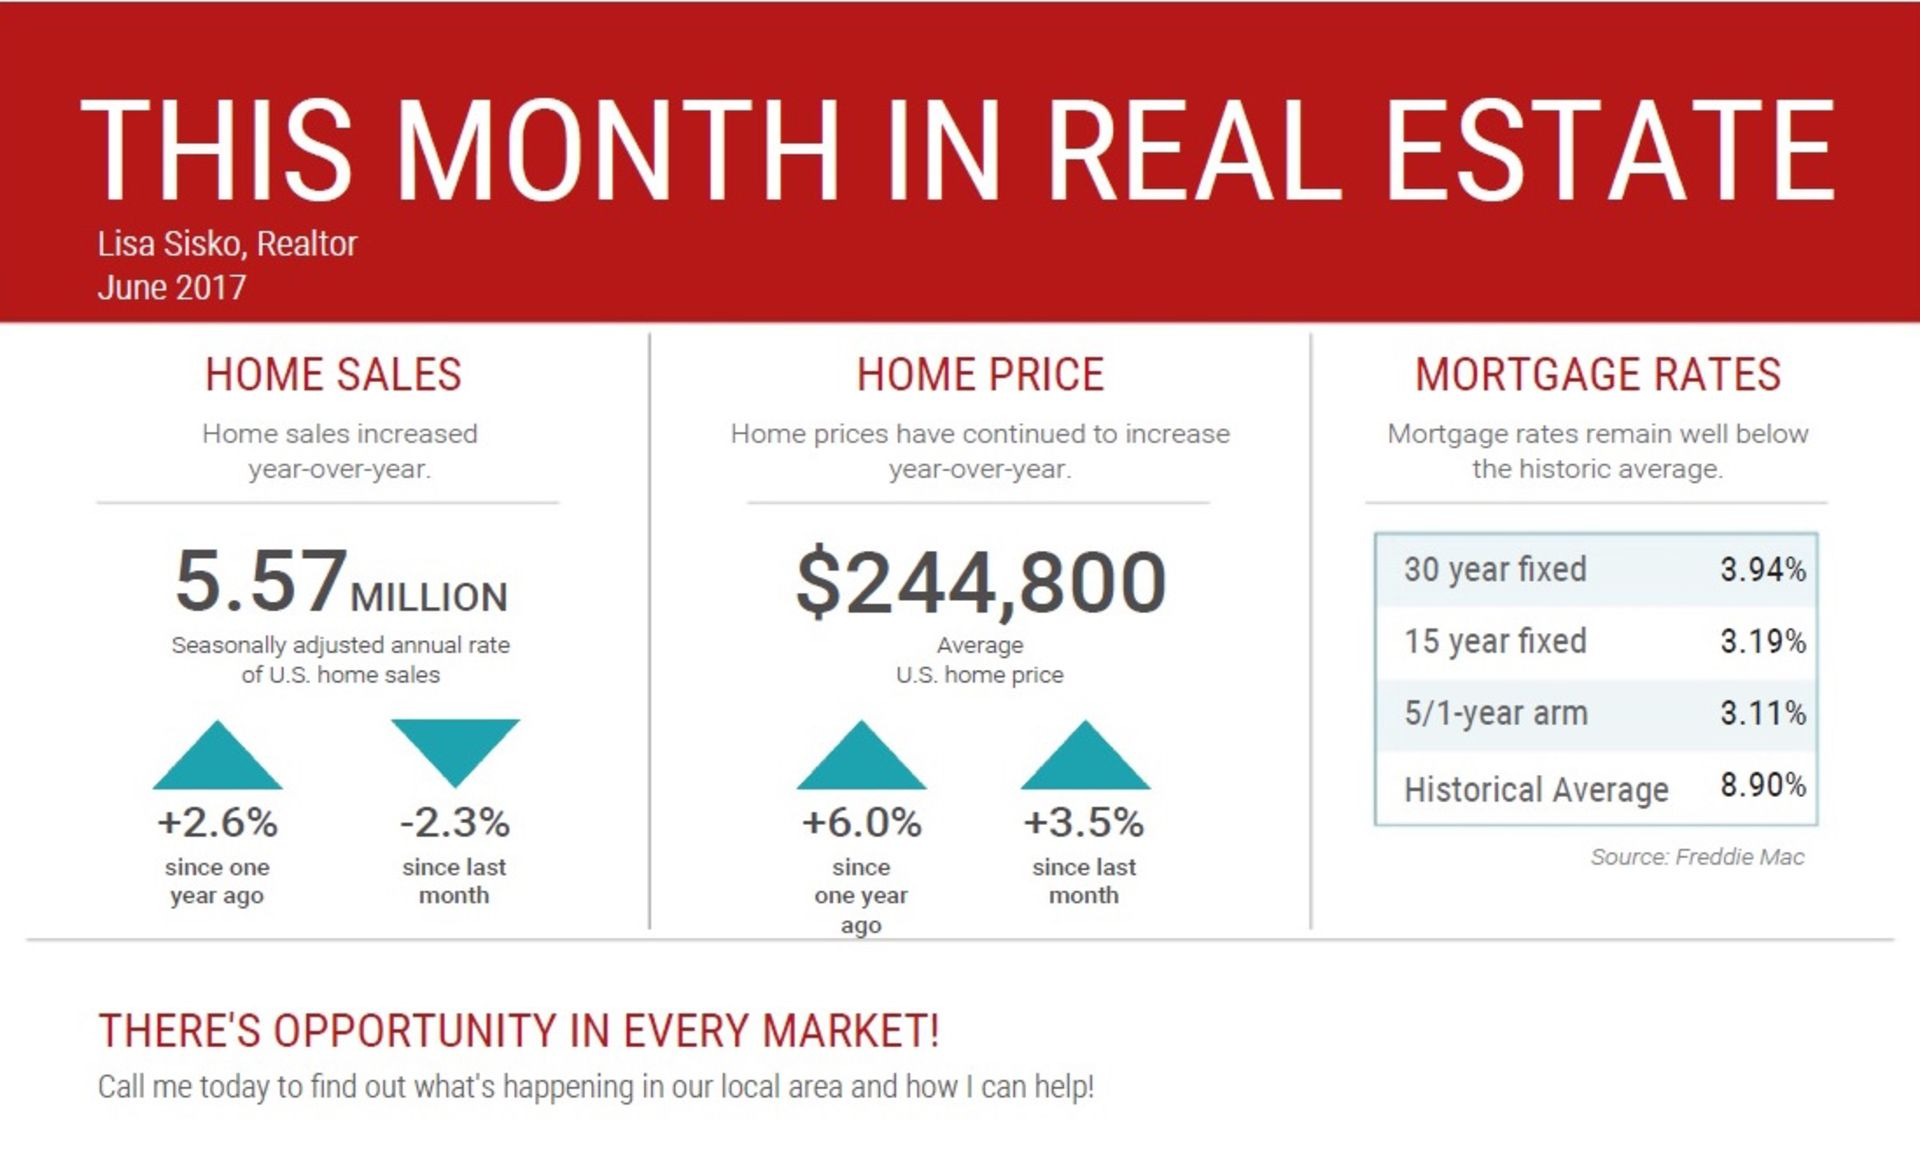 This Month in Real Estate – National Statistics for June 2017